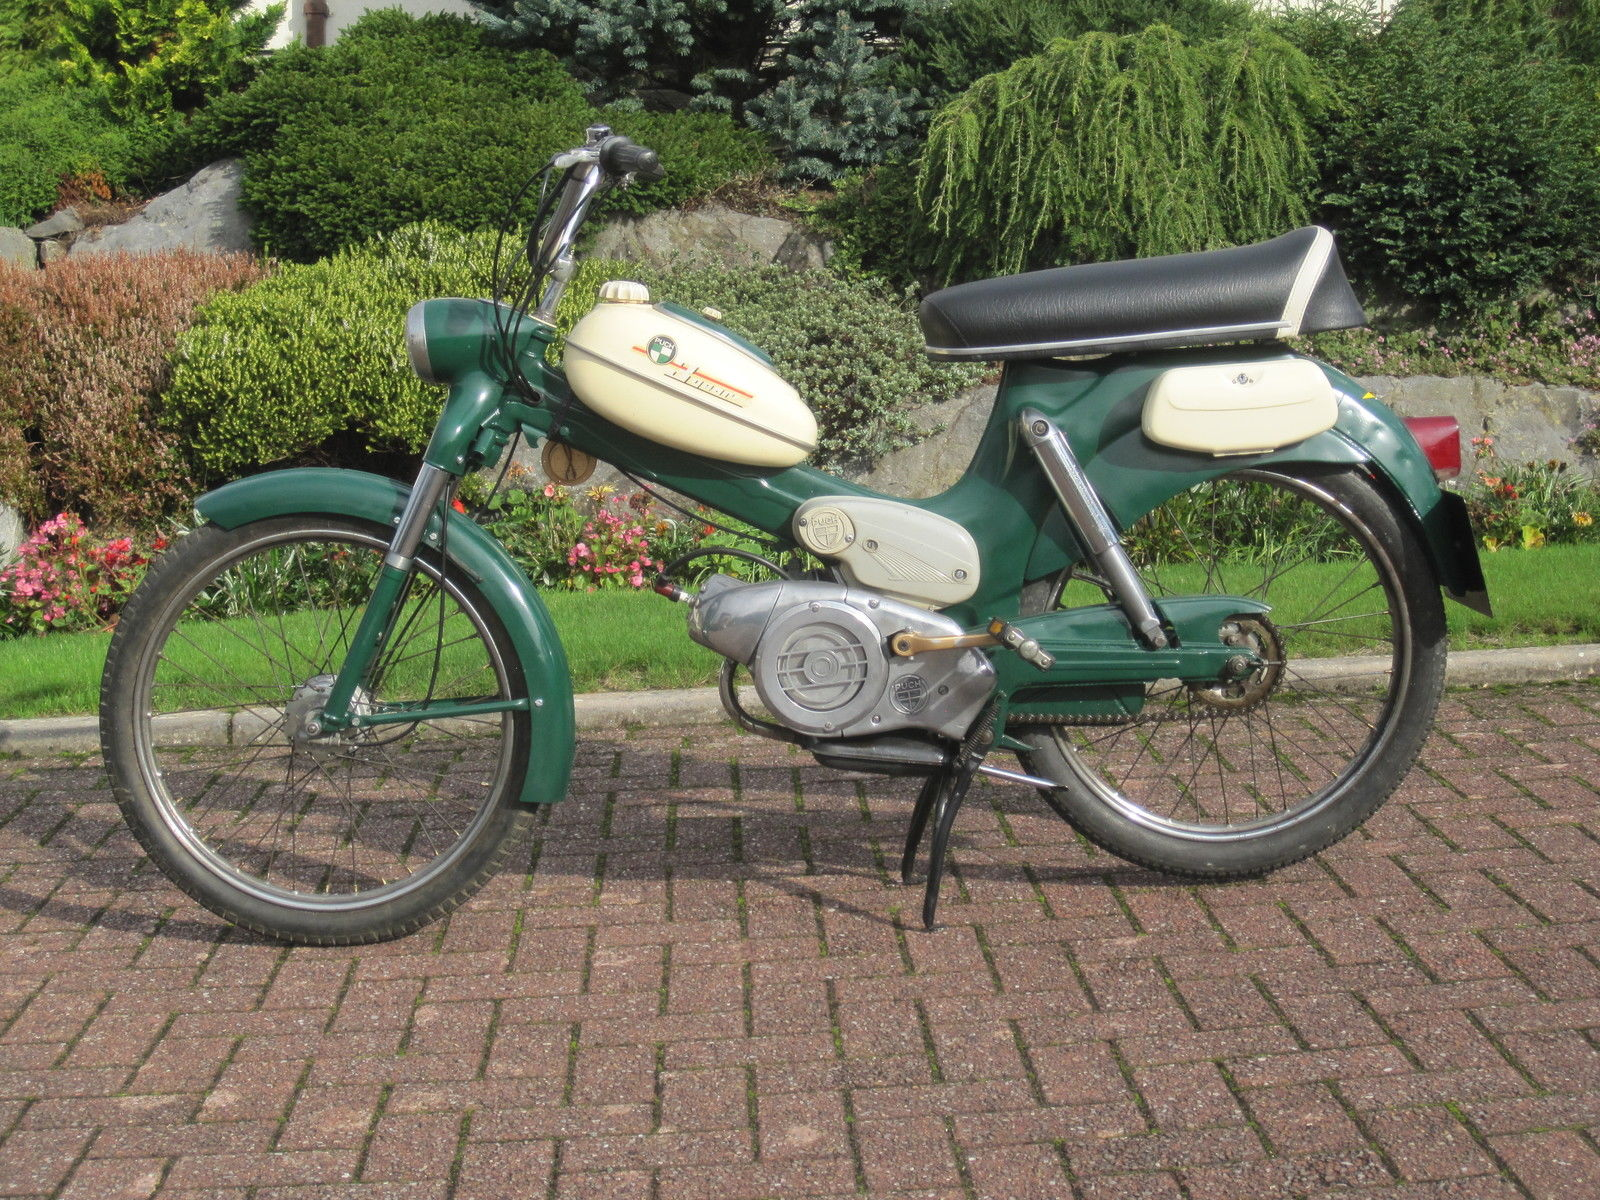 moped motorcycles for sale autos post. Black Bedroom Furniture Sets. Home Design Ideas